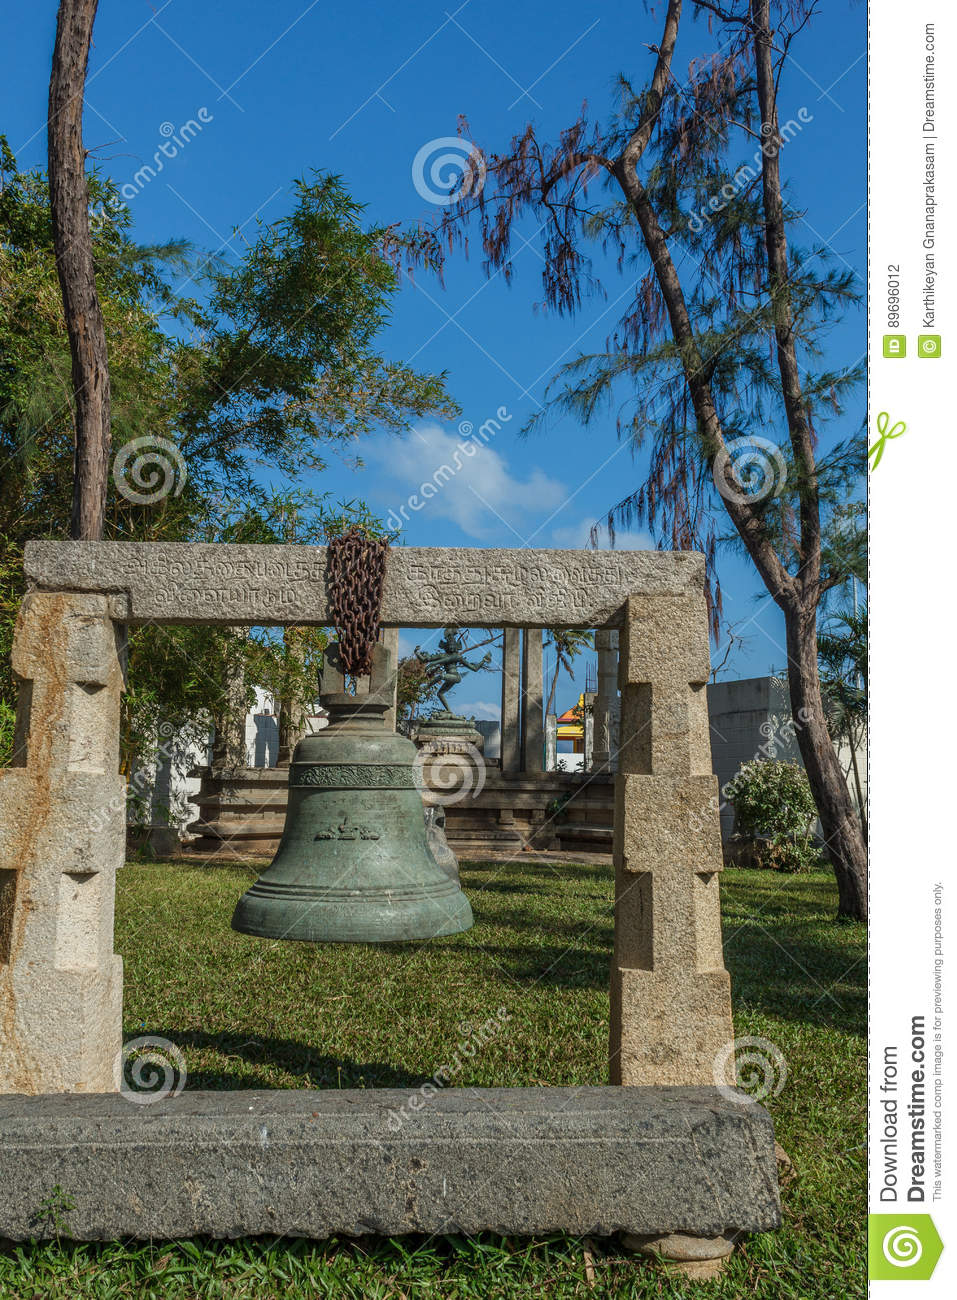 Big Bronze And Iron Bell With Carvings Hanging From Concrete Support